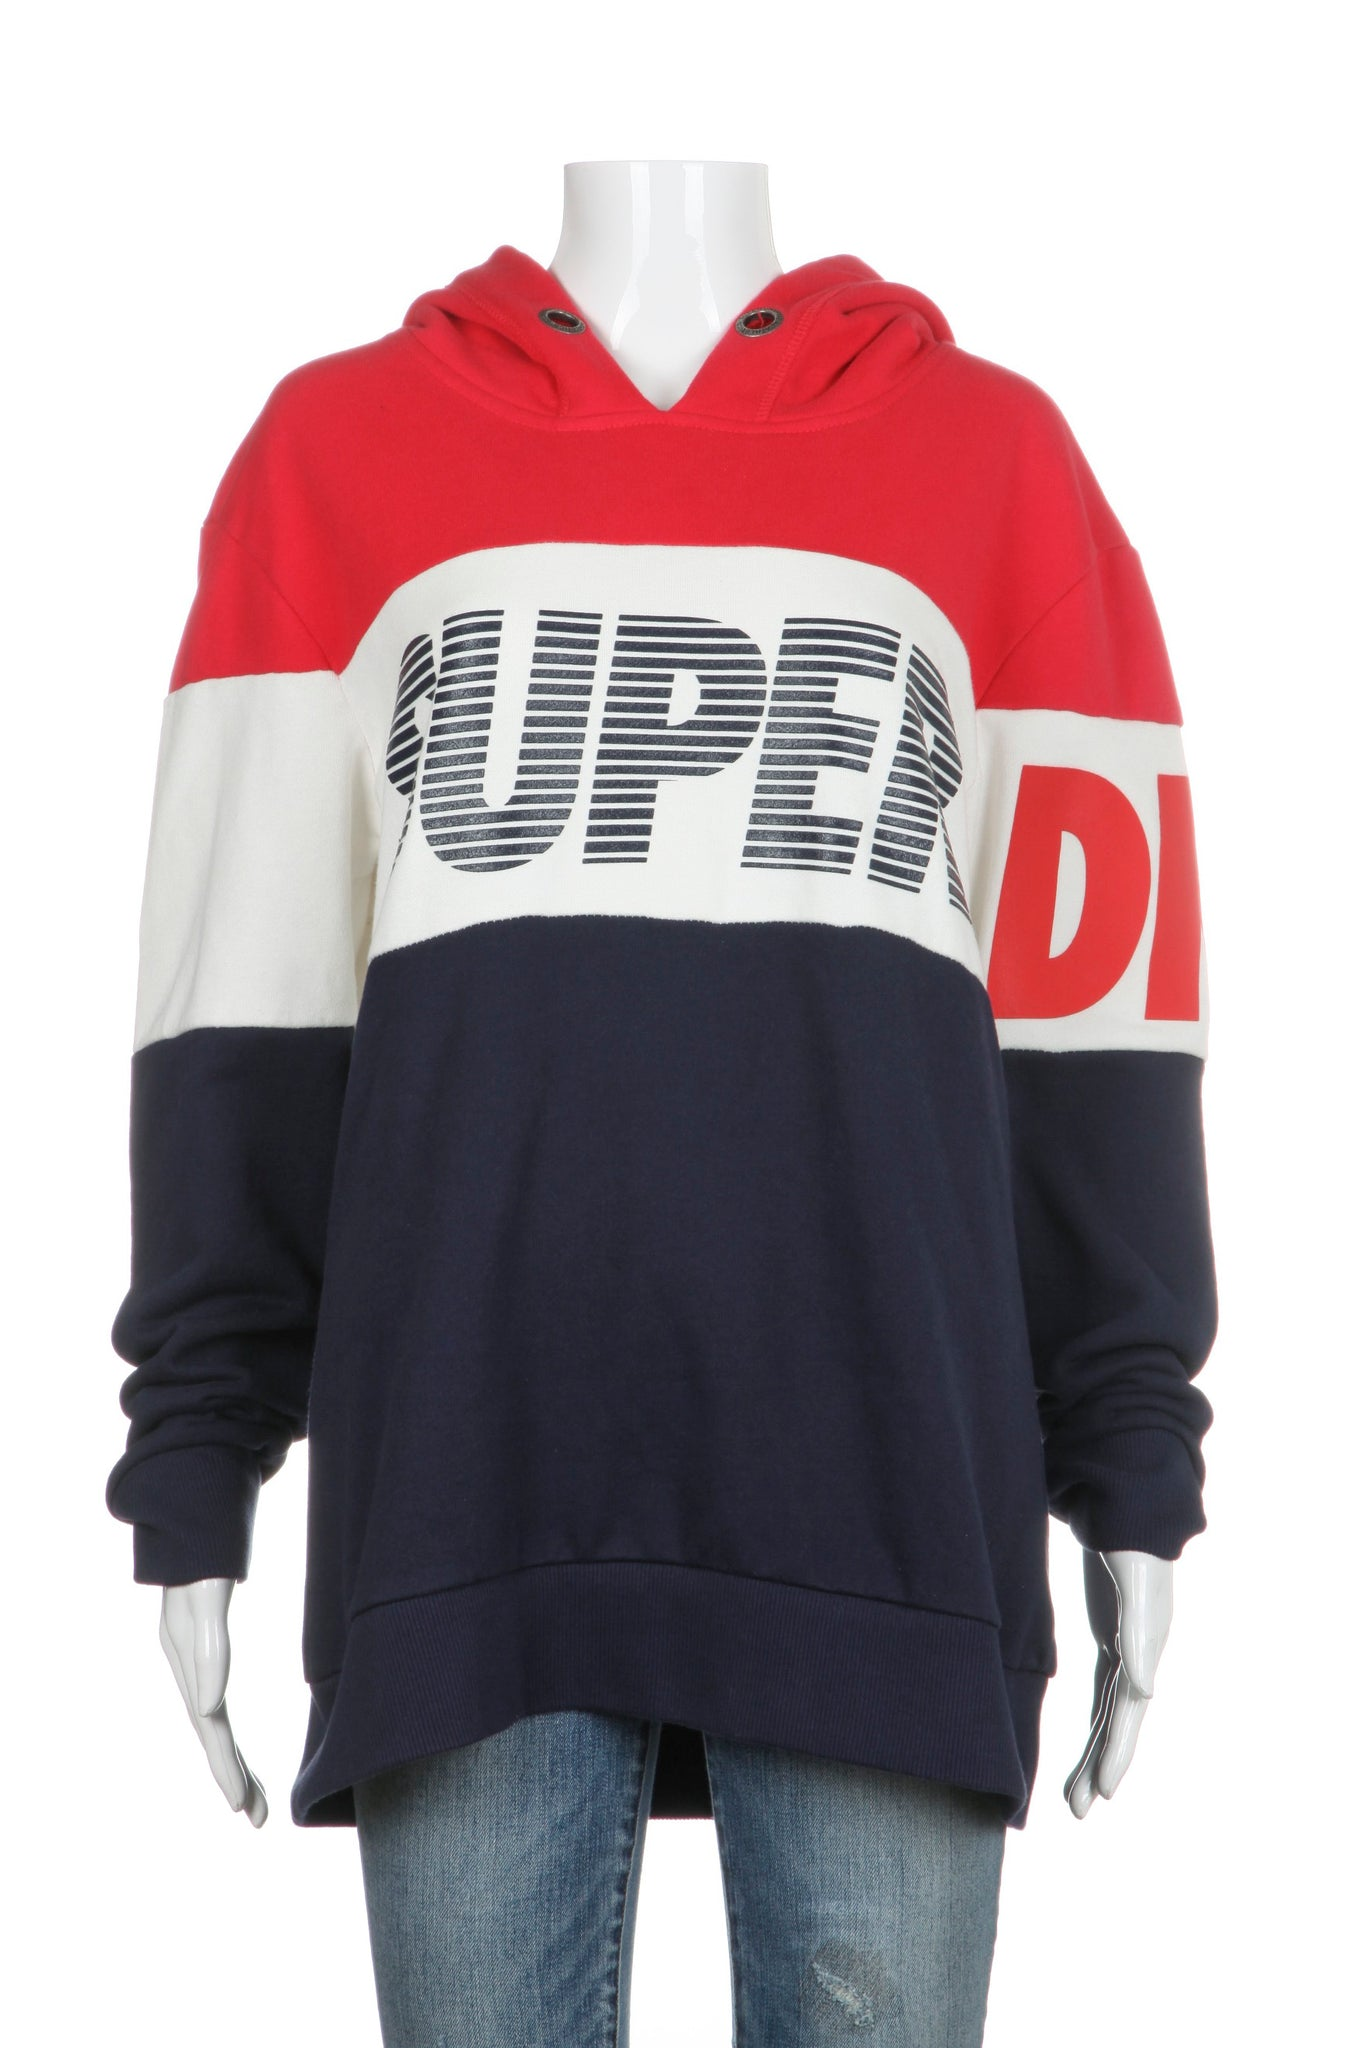 SUPERDRY Vintage Japan Athletics Sweatshirt Size S